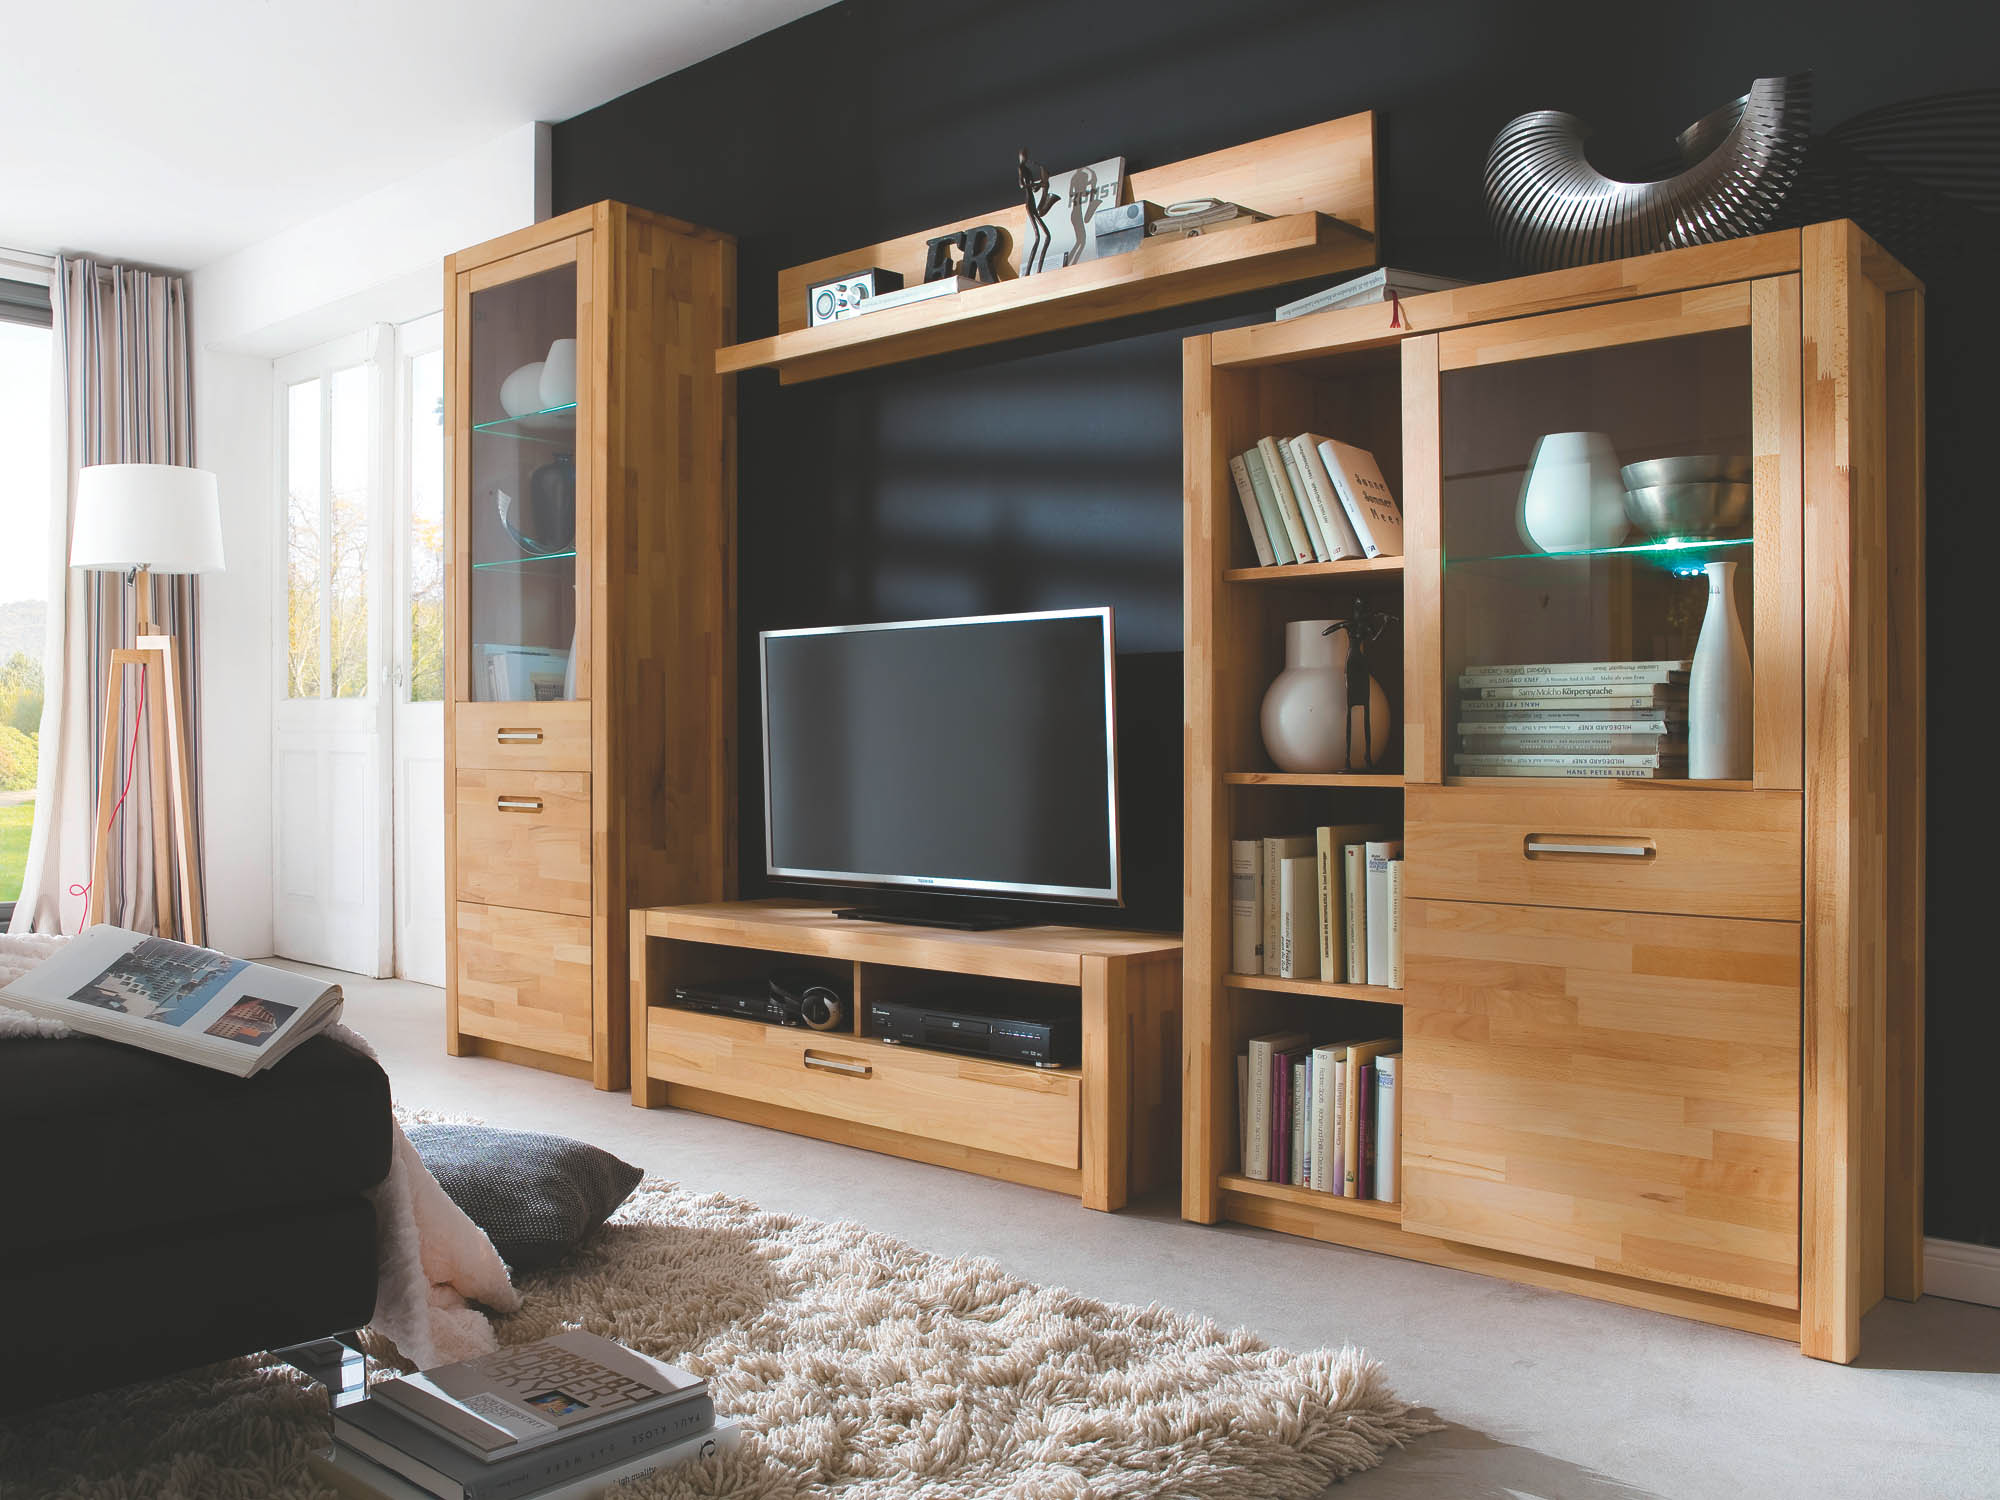 wohnwand inkl beleuchtung 4 tlg fenja von mca furniture kernbuche. Black Bedroom Furniture Sets. Home Design Ideas